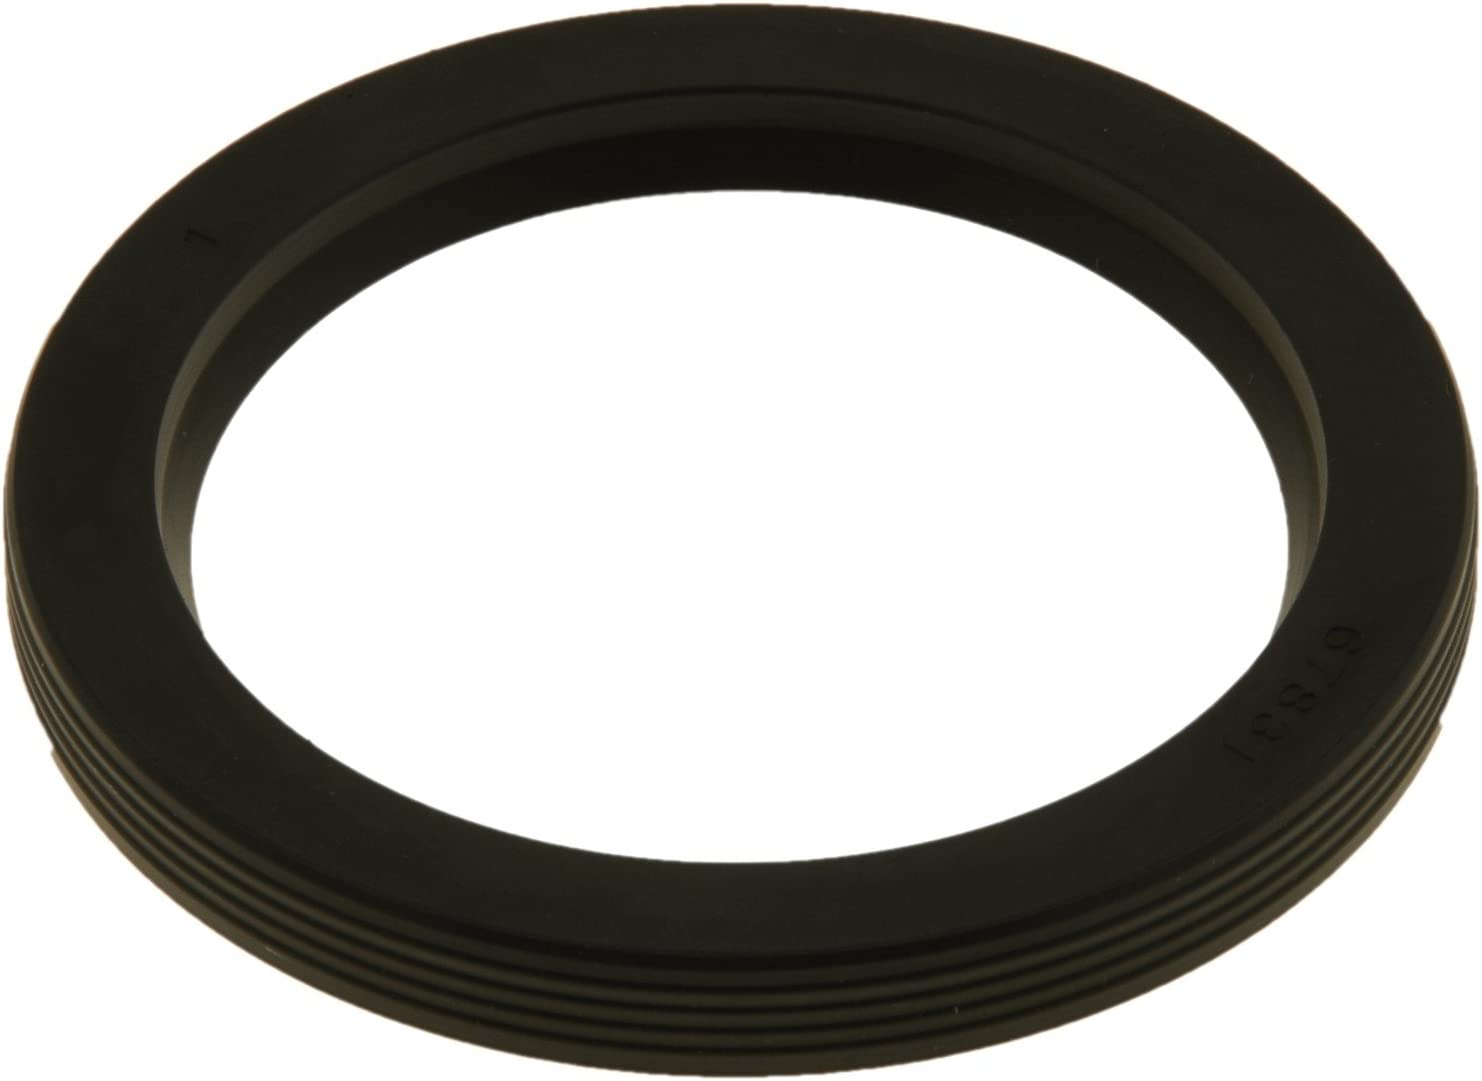 MAHLE Original 67831 Engine Max 47% Tampa Mall OFF Timing Cover Seal 1 Pack